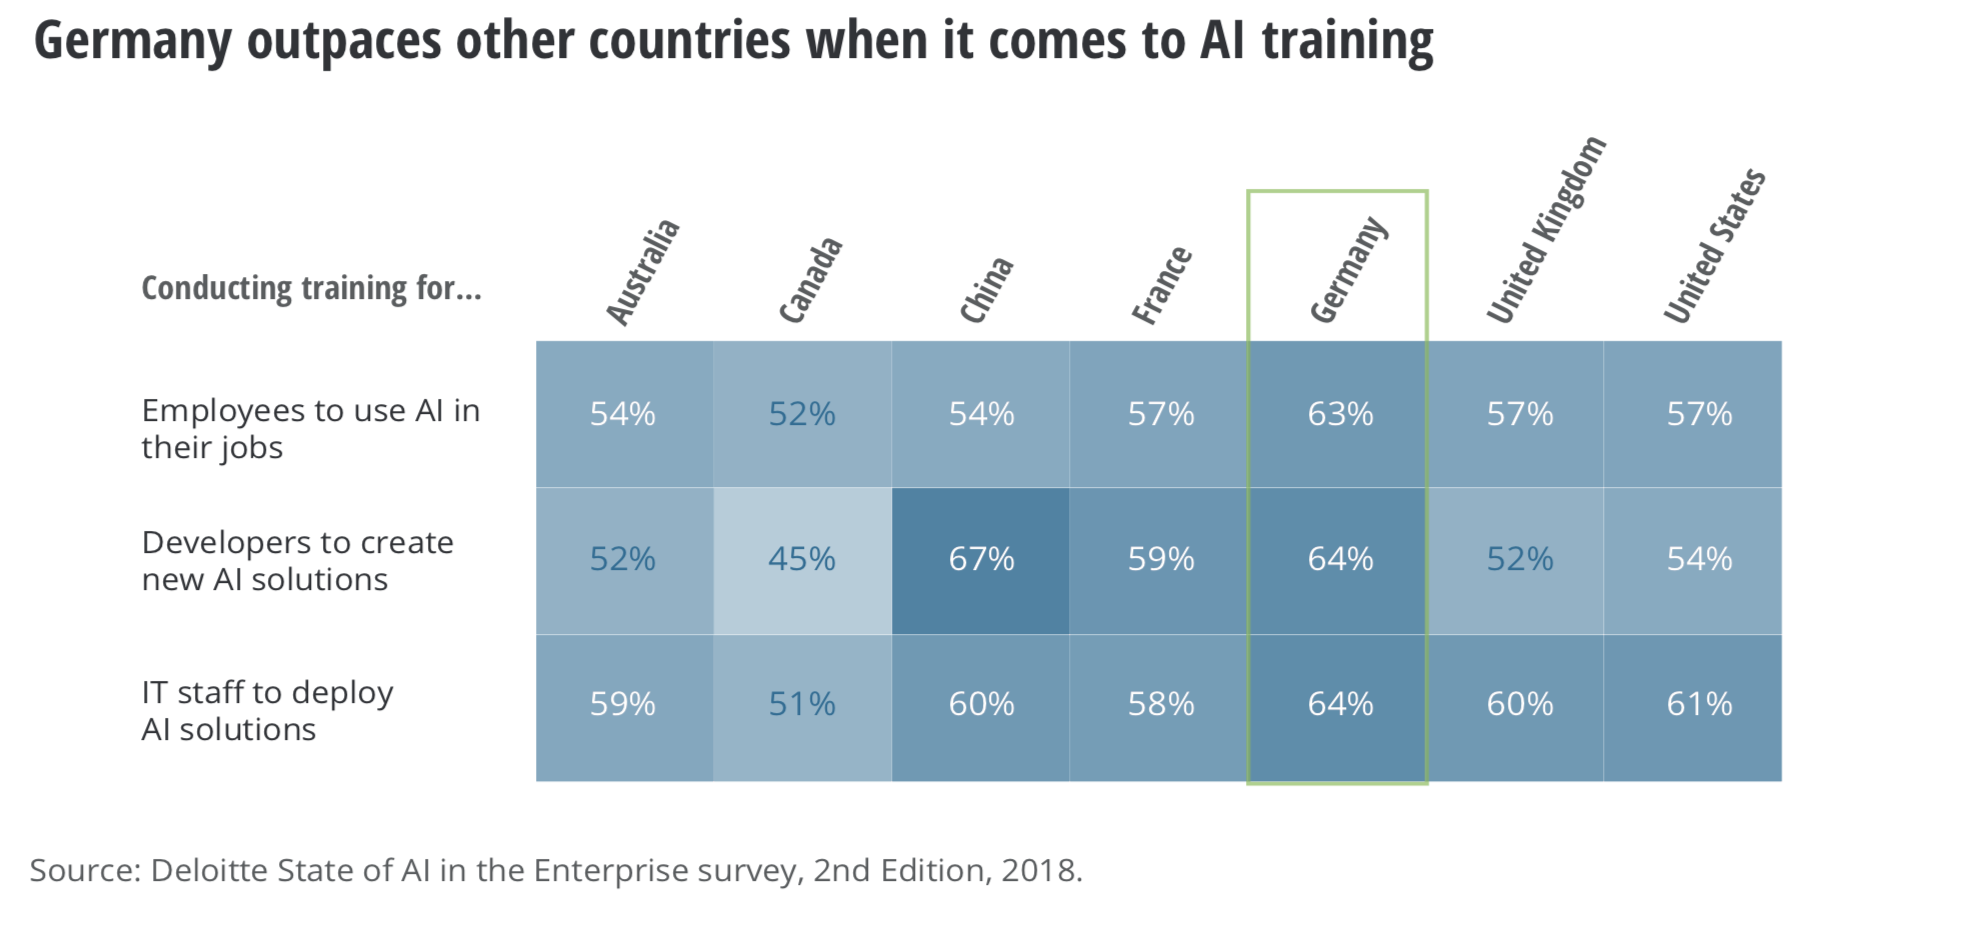 Germany outspaces other countries when it comes to AI training